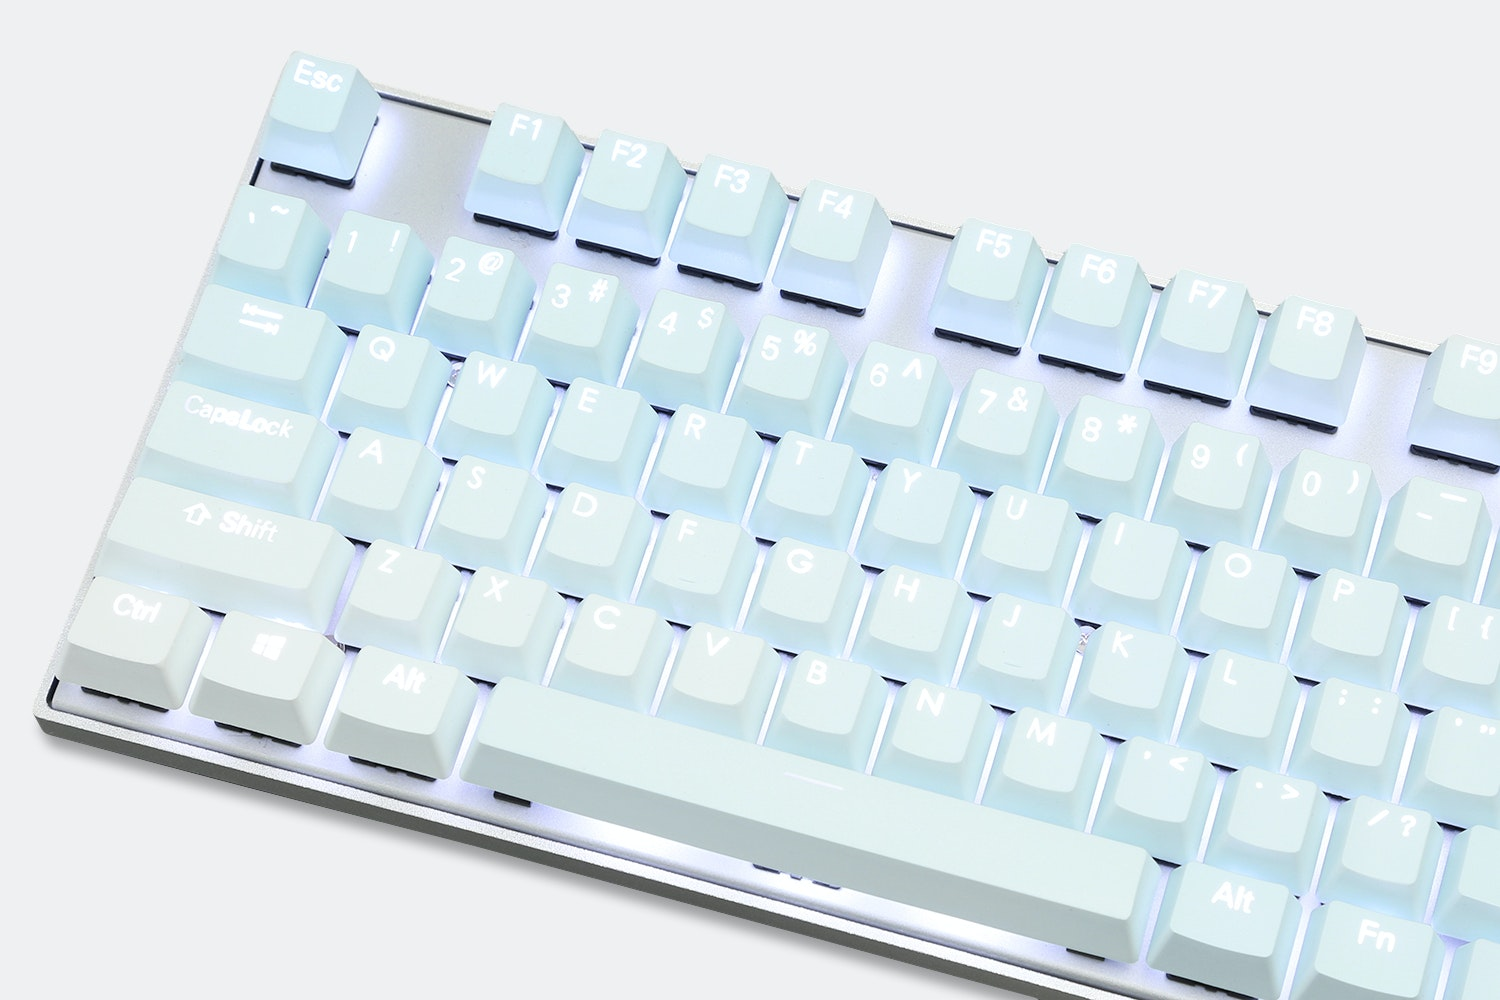 Backlit Doubleshot Gradient PBT Keycap Set